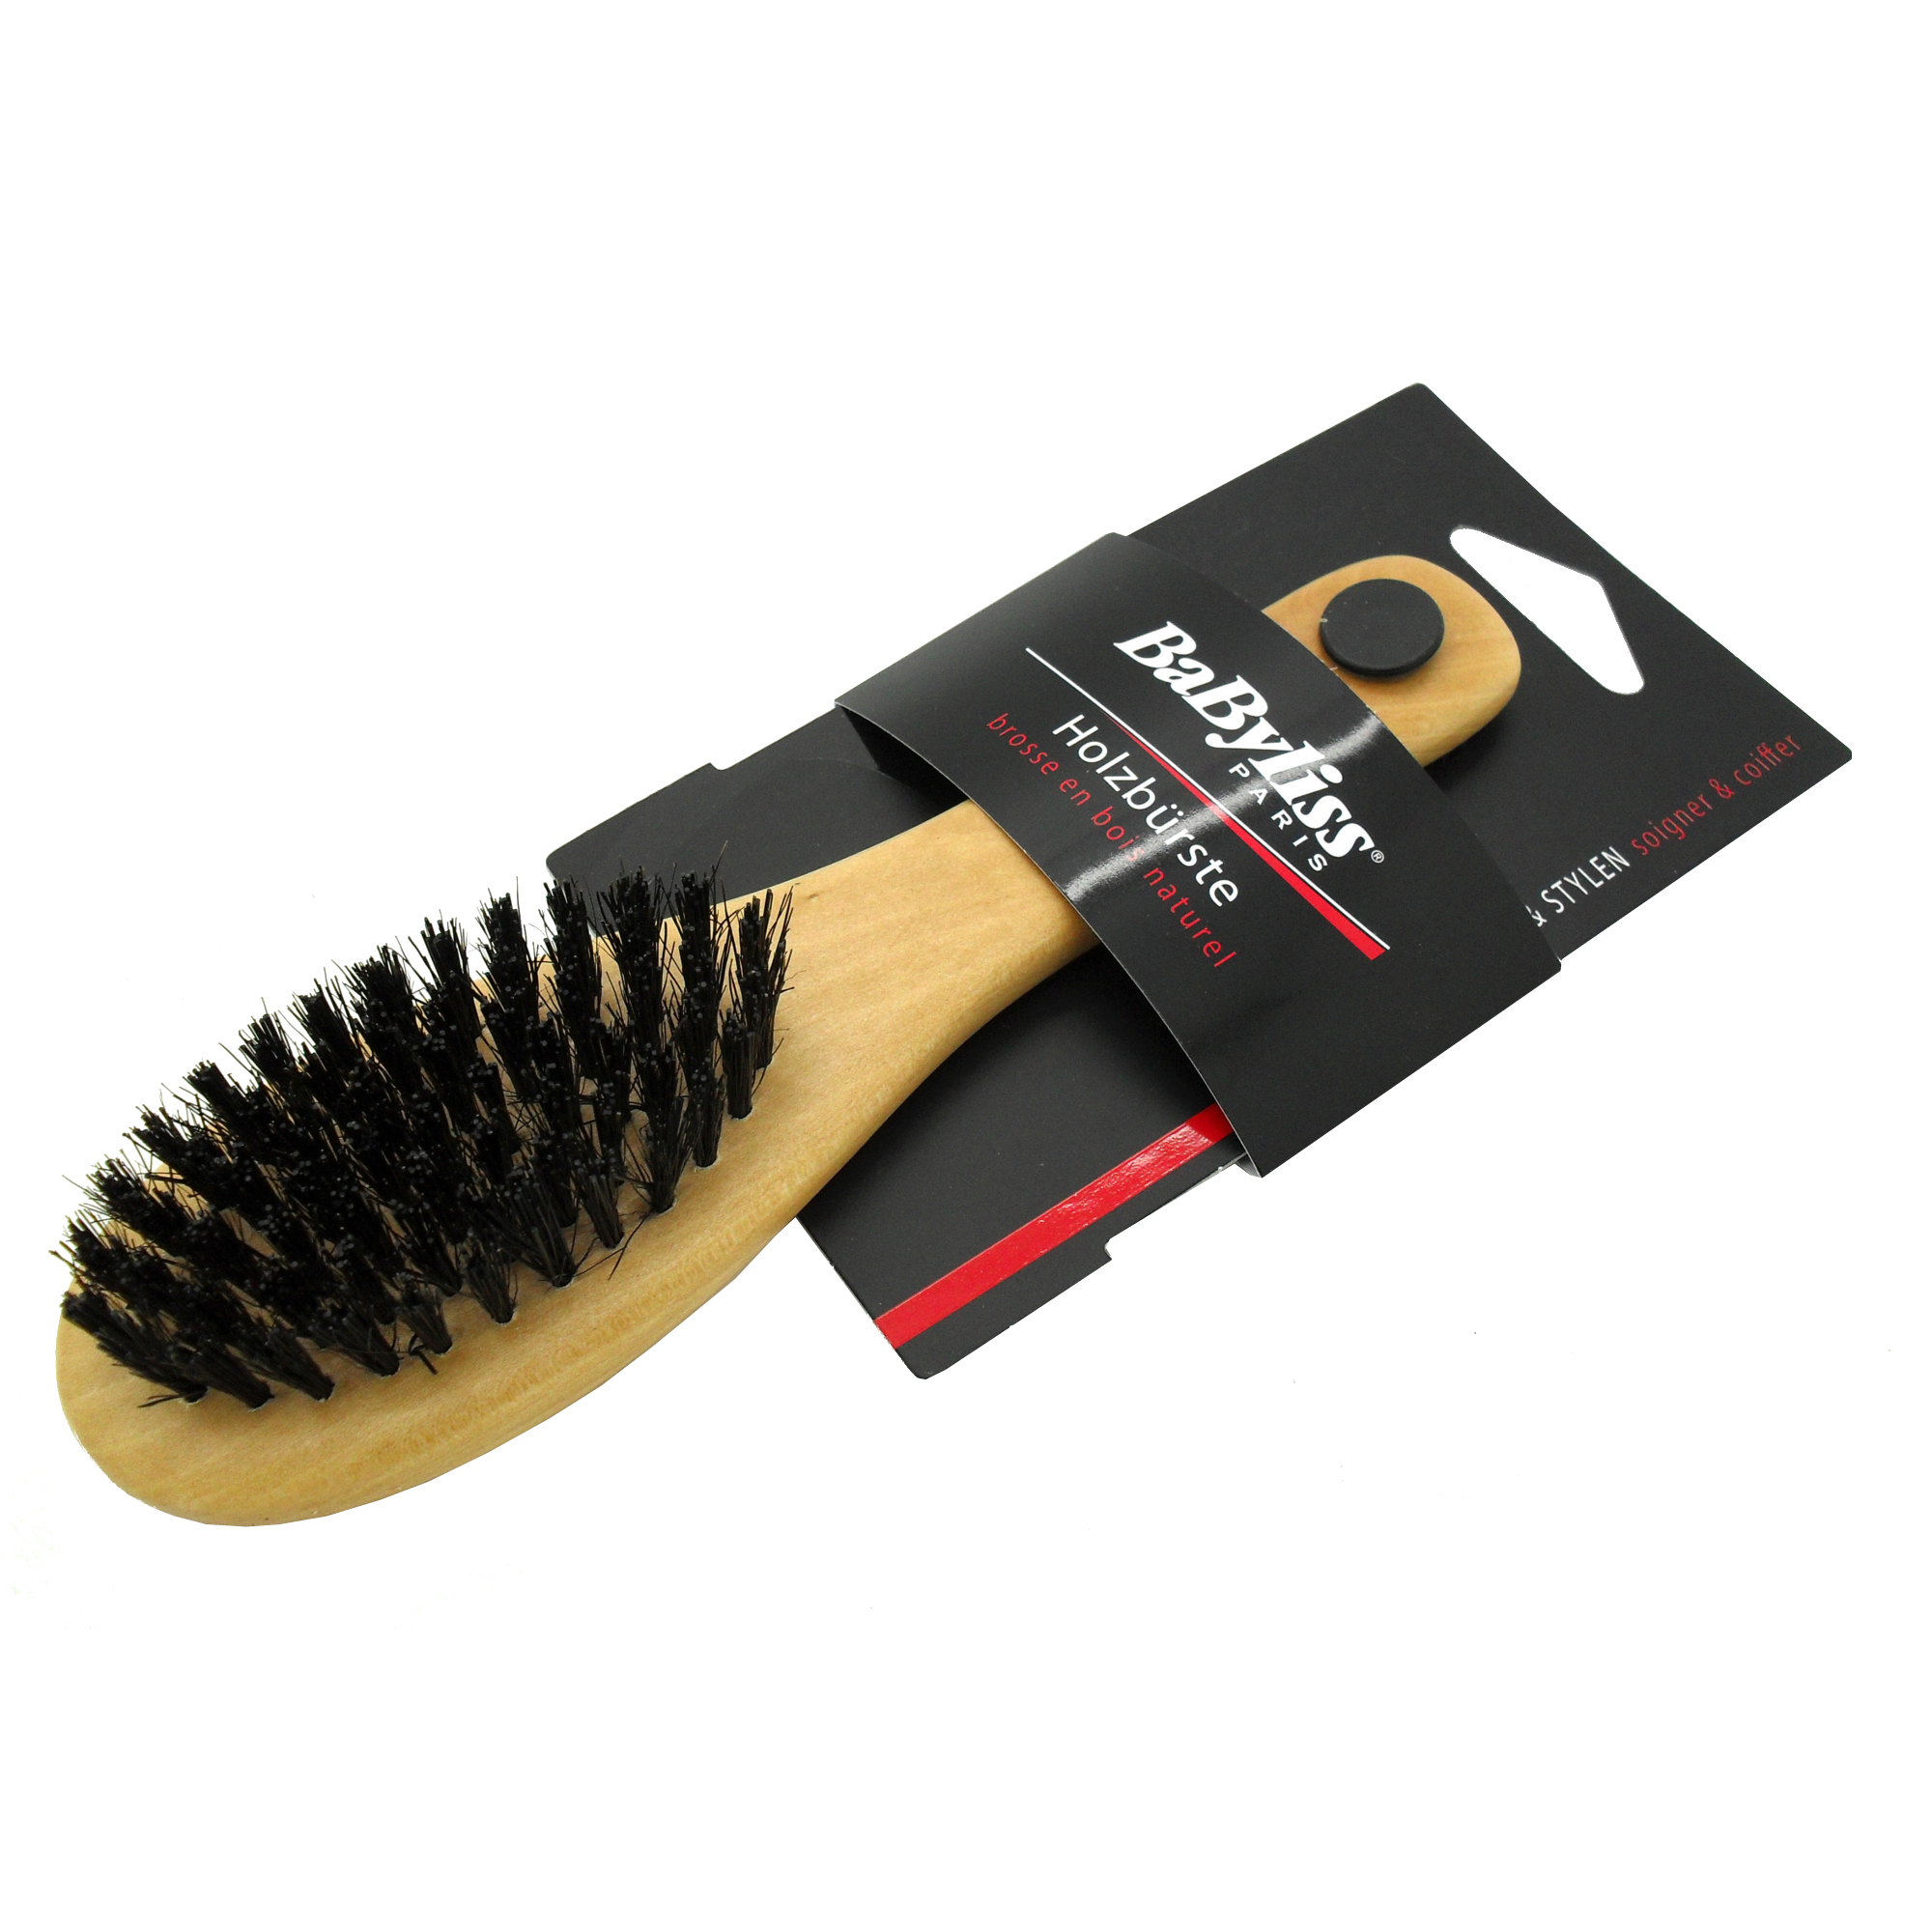 brush women By transitioning to morrocco method shampoos and using a boar bristle brush, most women find that they can reduce the frequency of their hair washing to every two, three, four or even five days how to properly use a boar bristle brush.